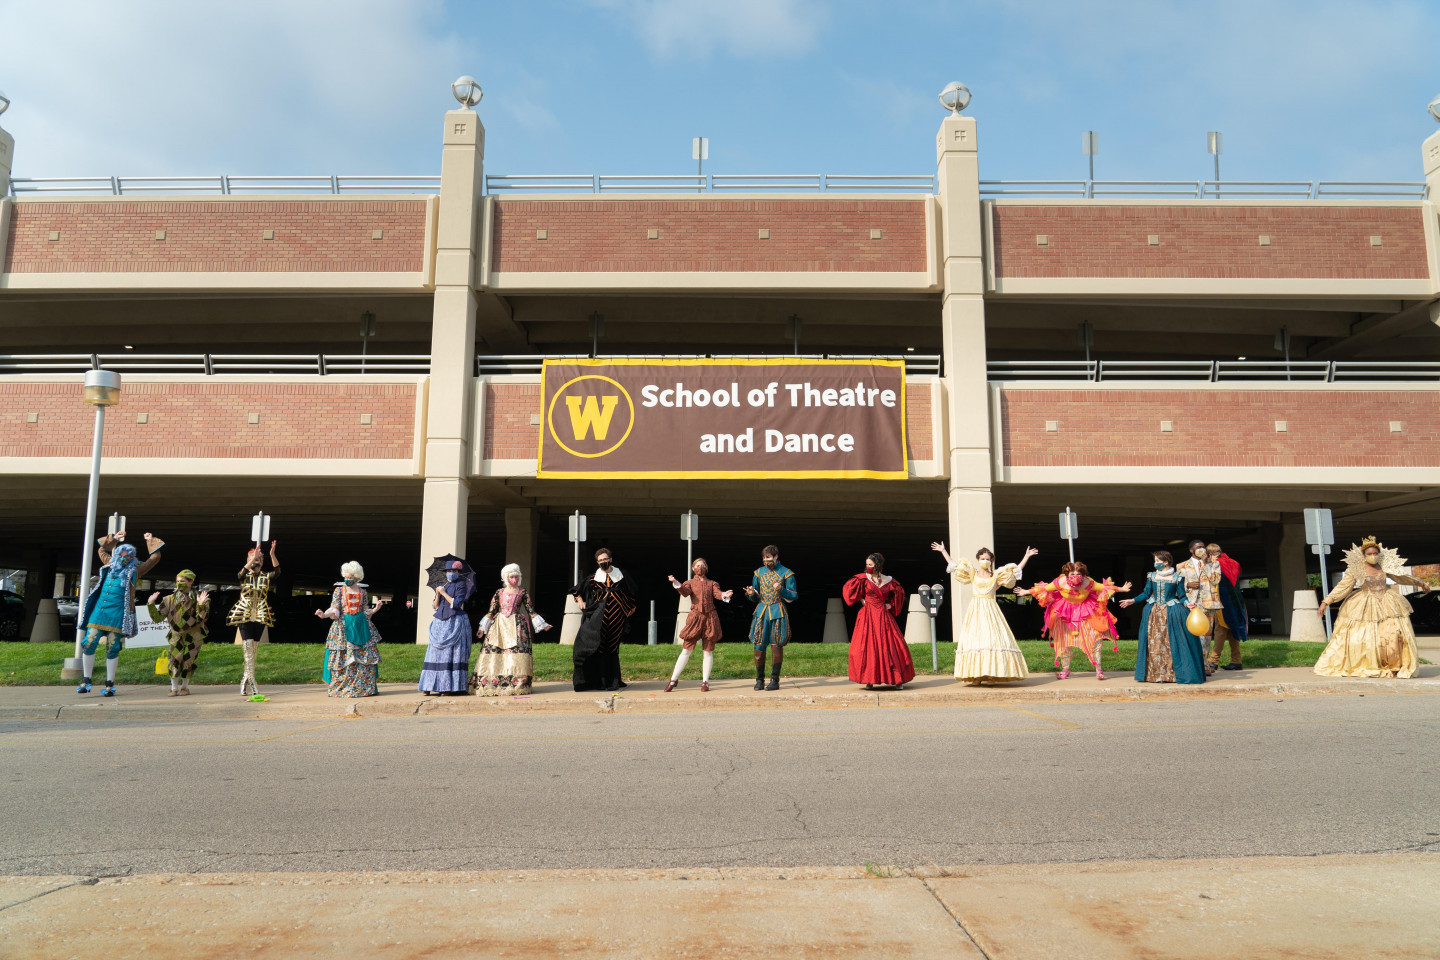 WMU Theatre students stand in front of a School of Theatre and Dance banner.